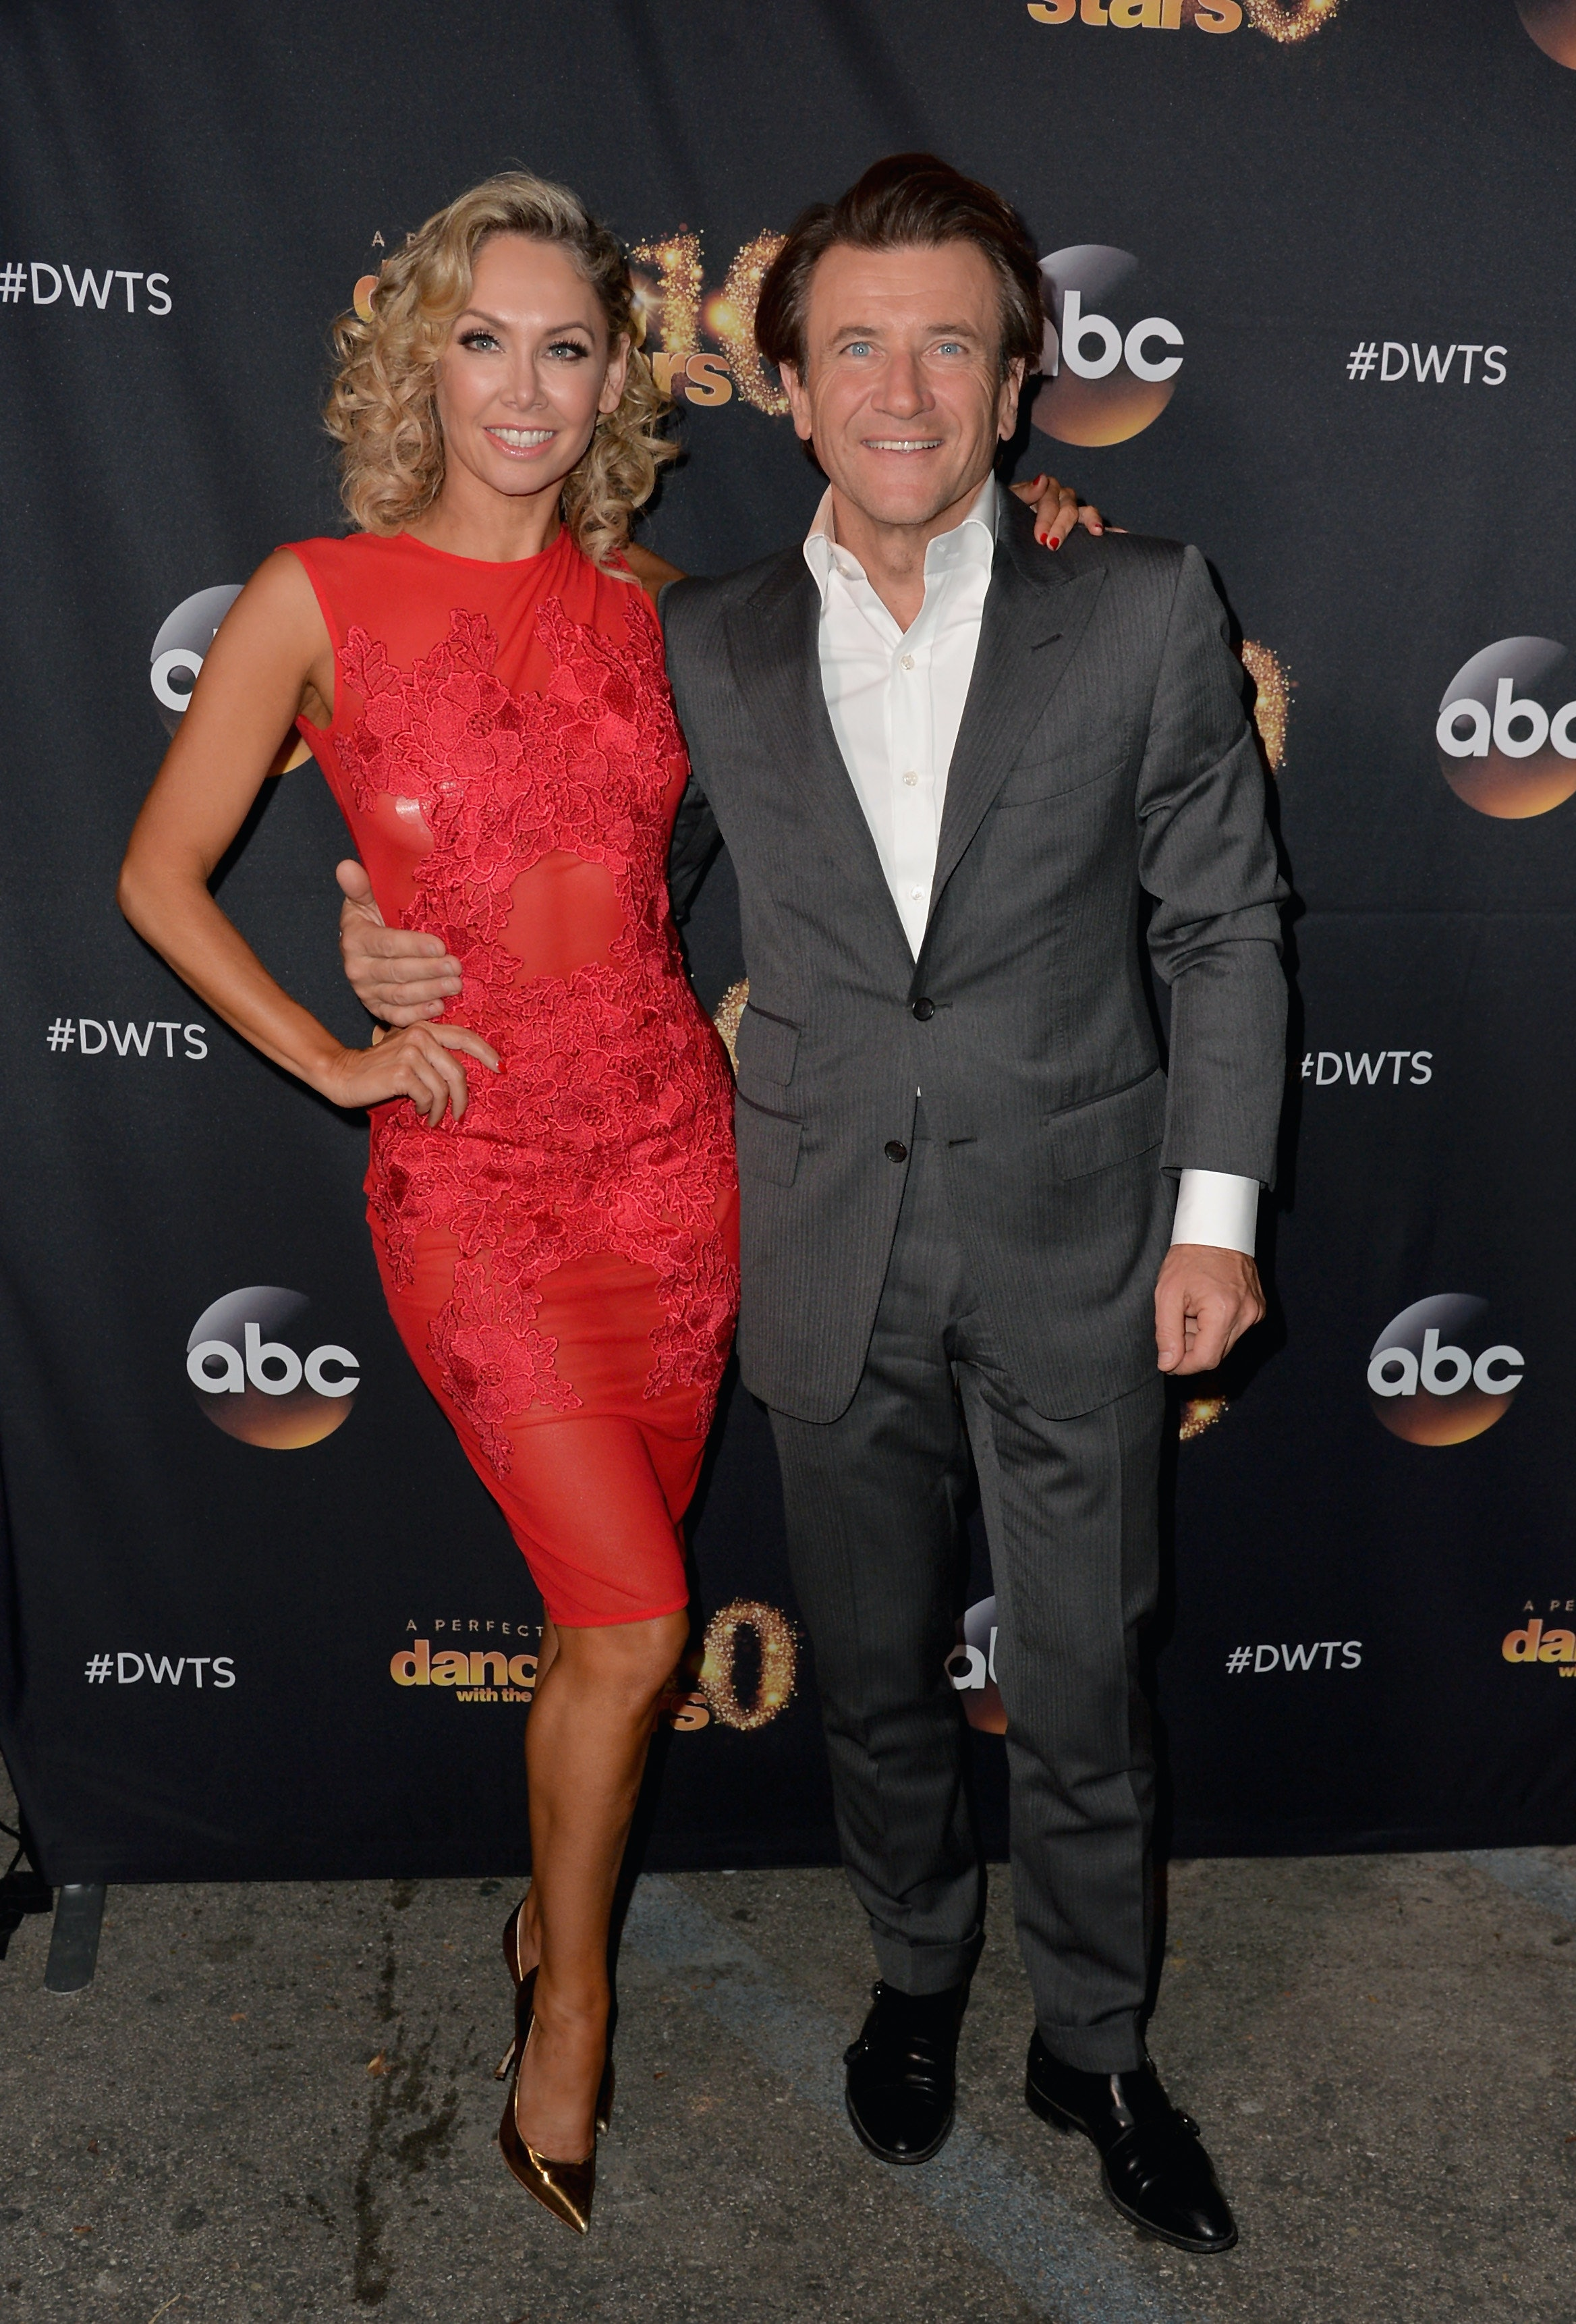 Robert dating dancing with the stars